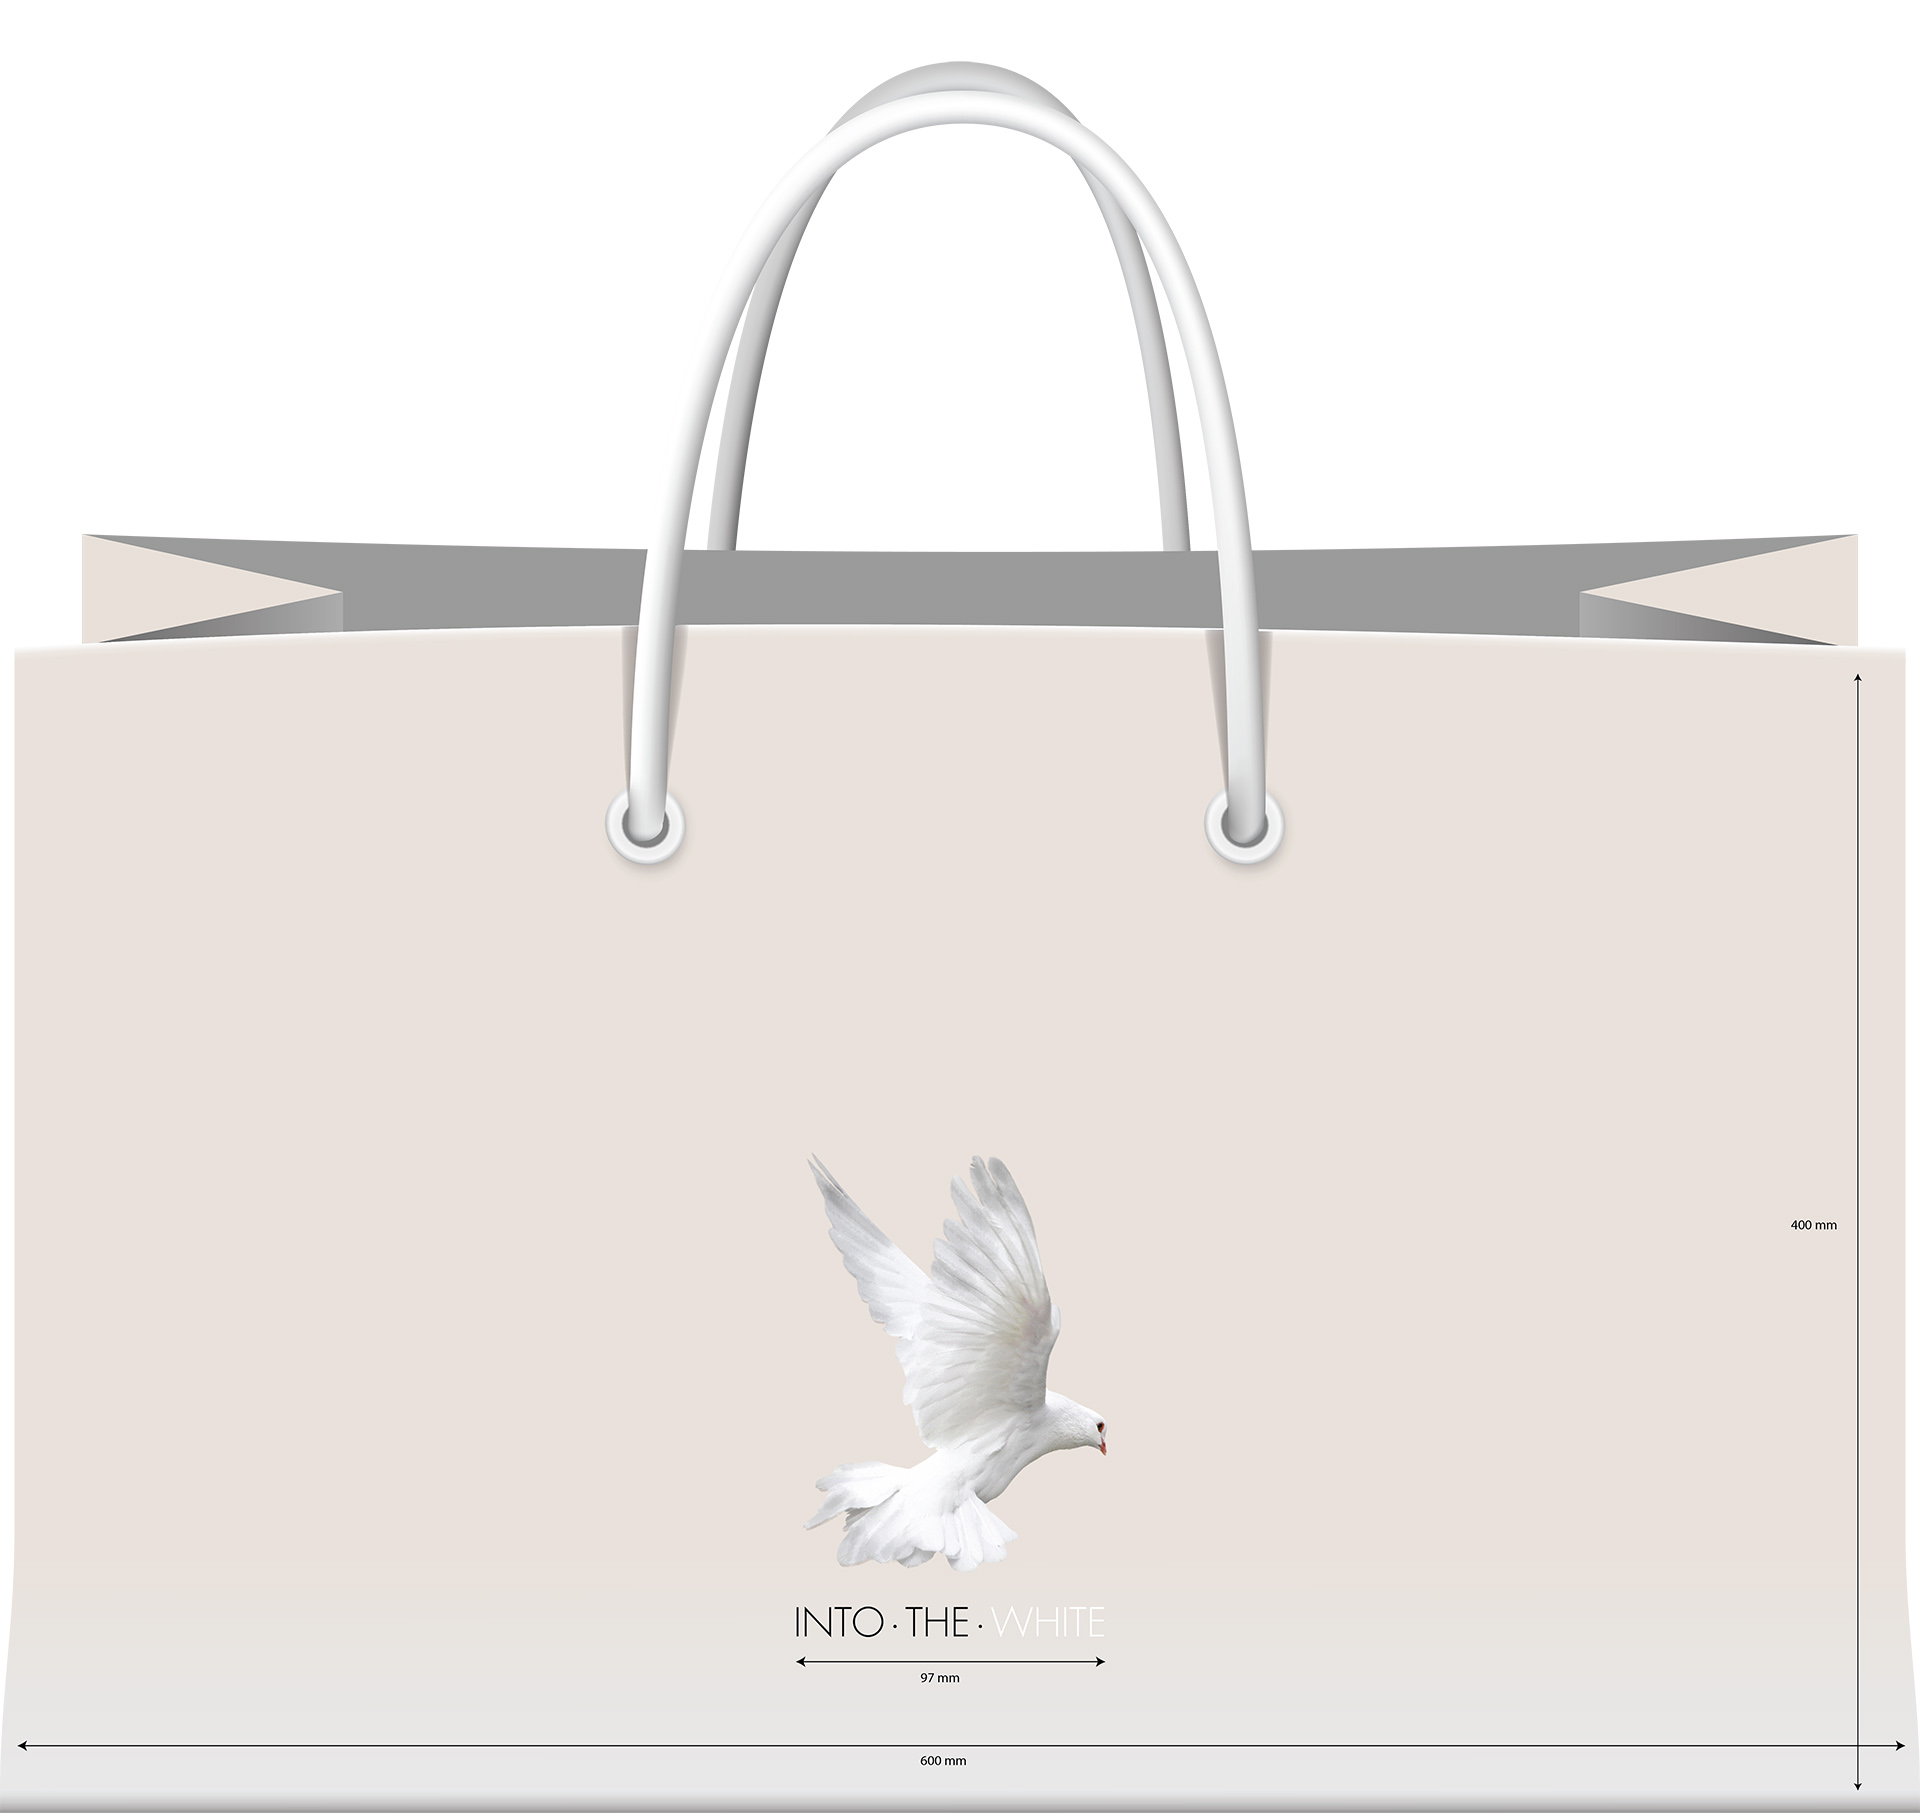 SHOPPING BAG ITW